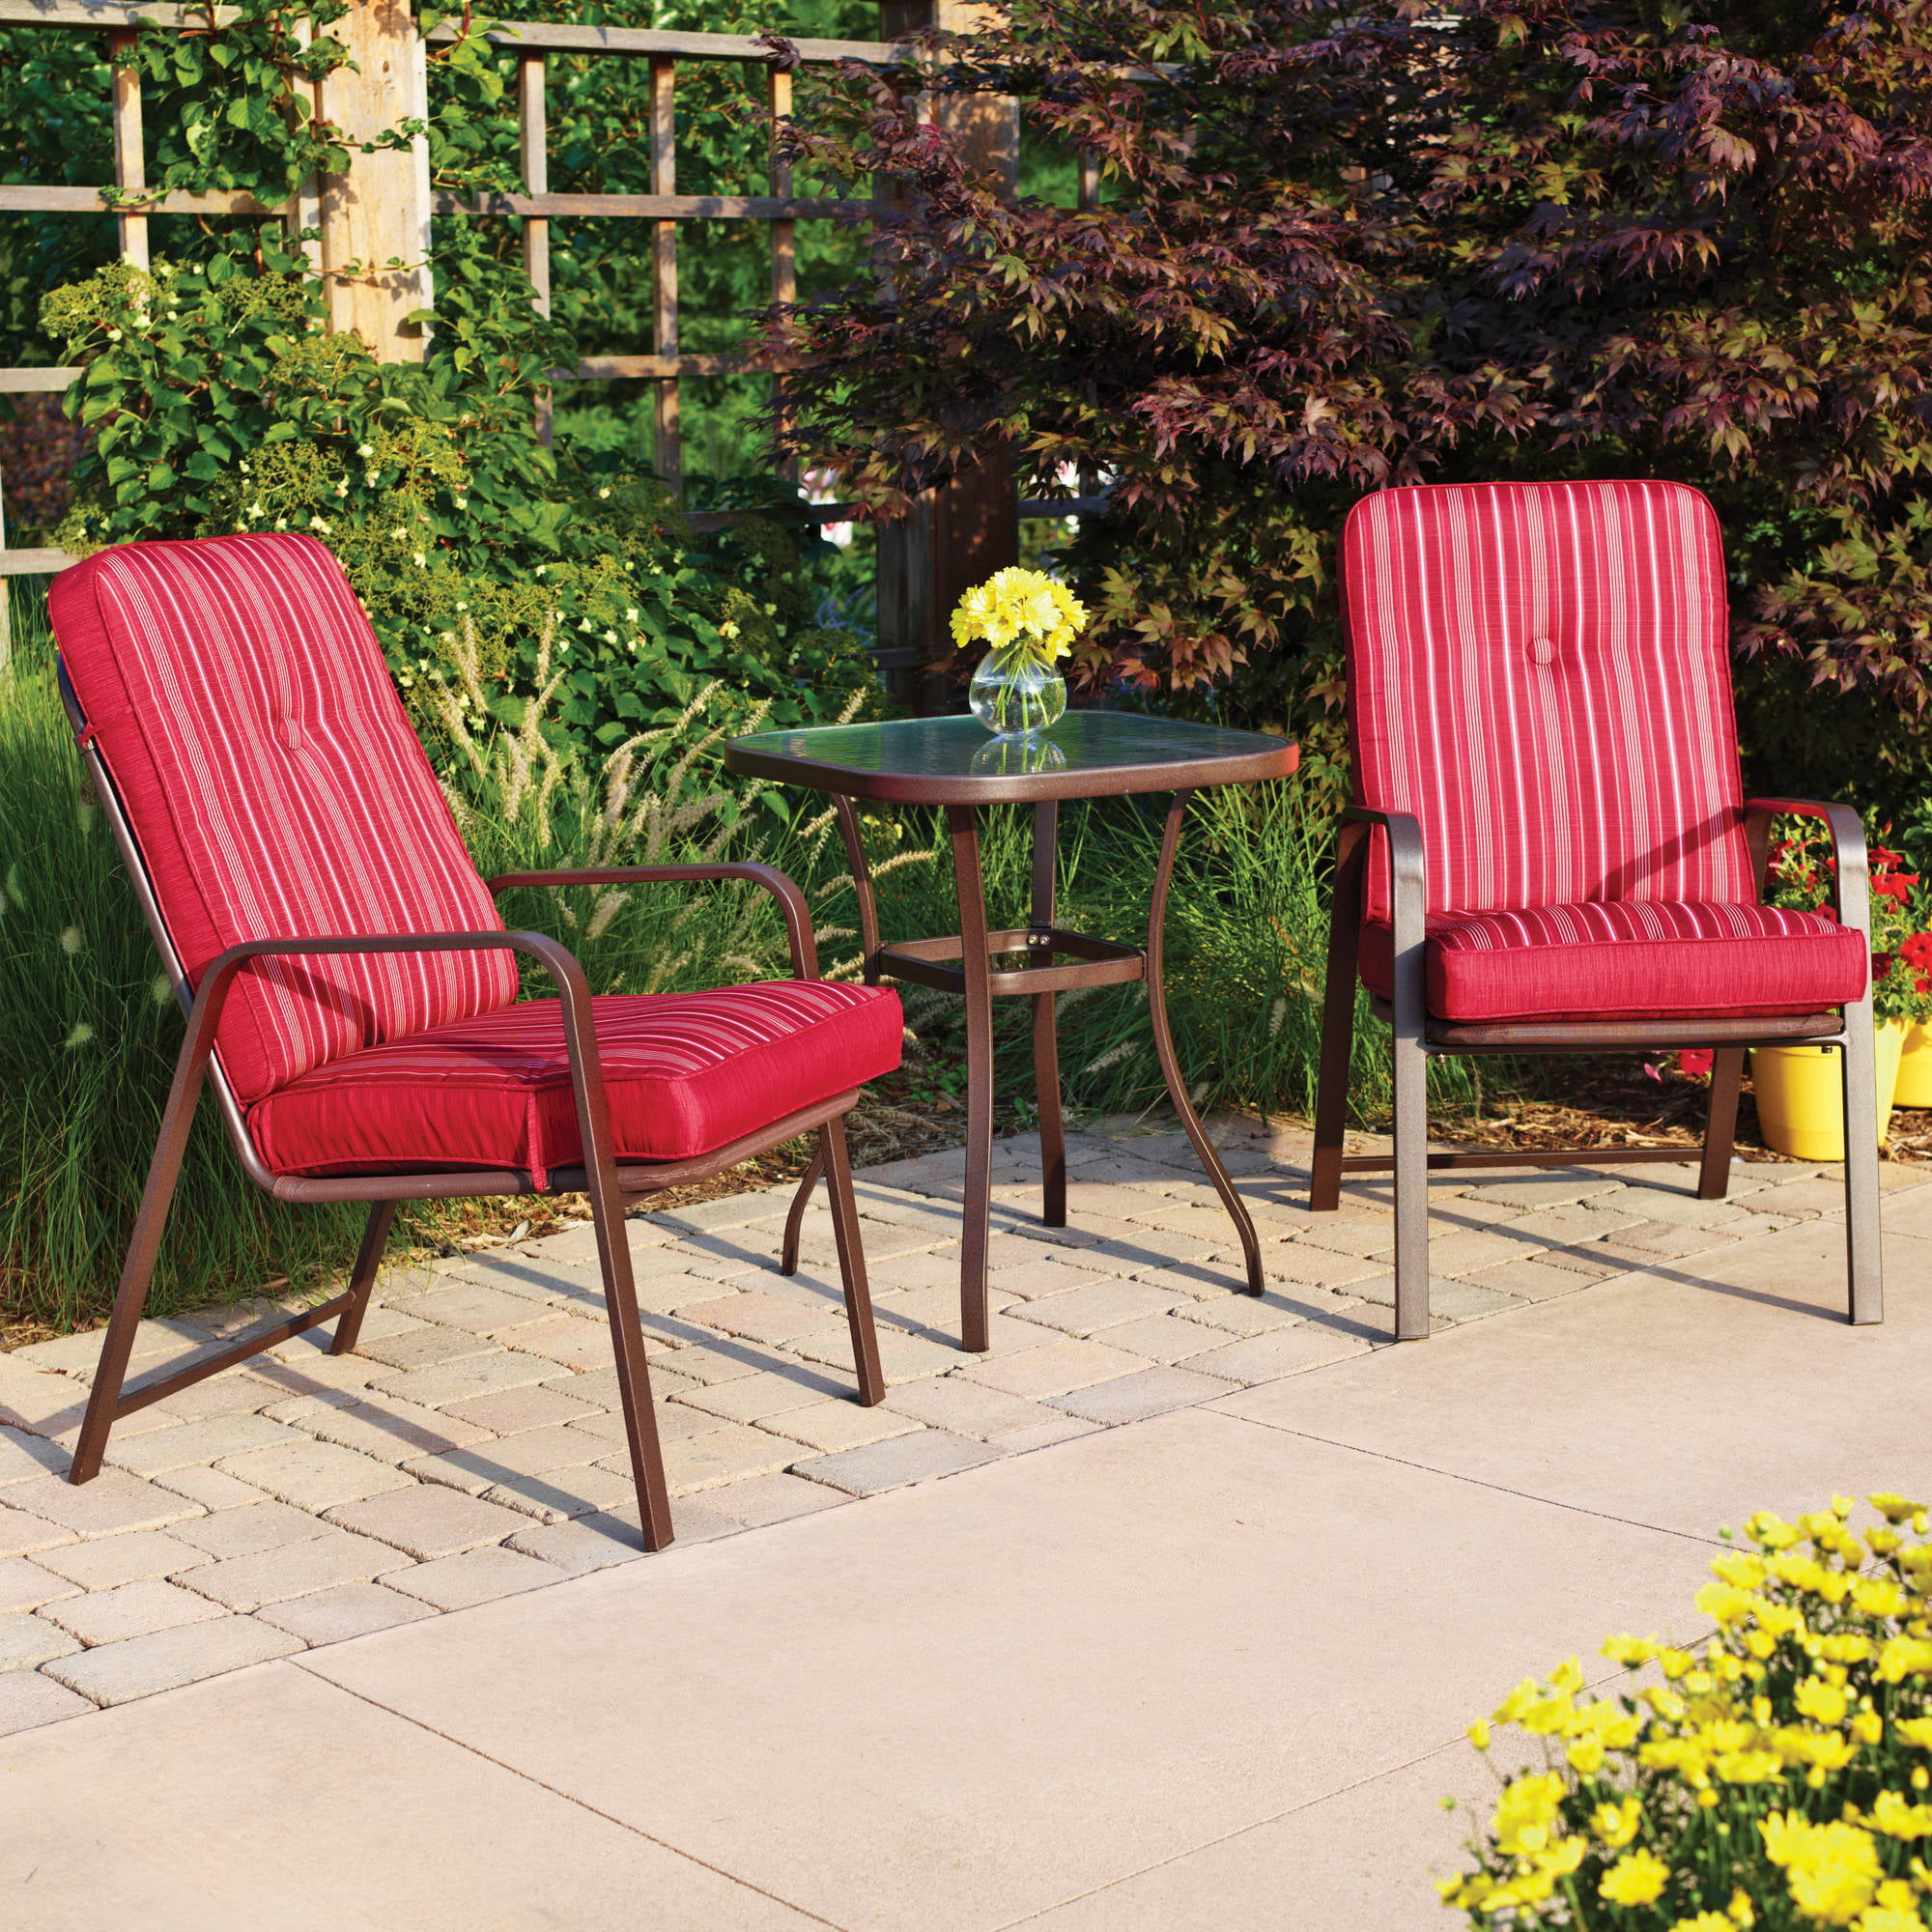 Better Homes And Gardens Rose 3 Piece Outdoor Bistro Set   Walmart.com